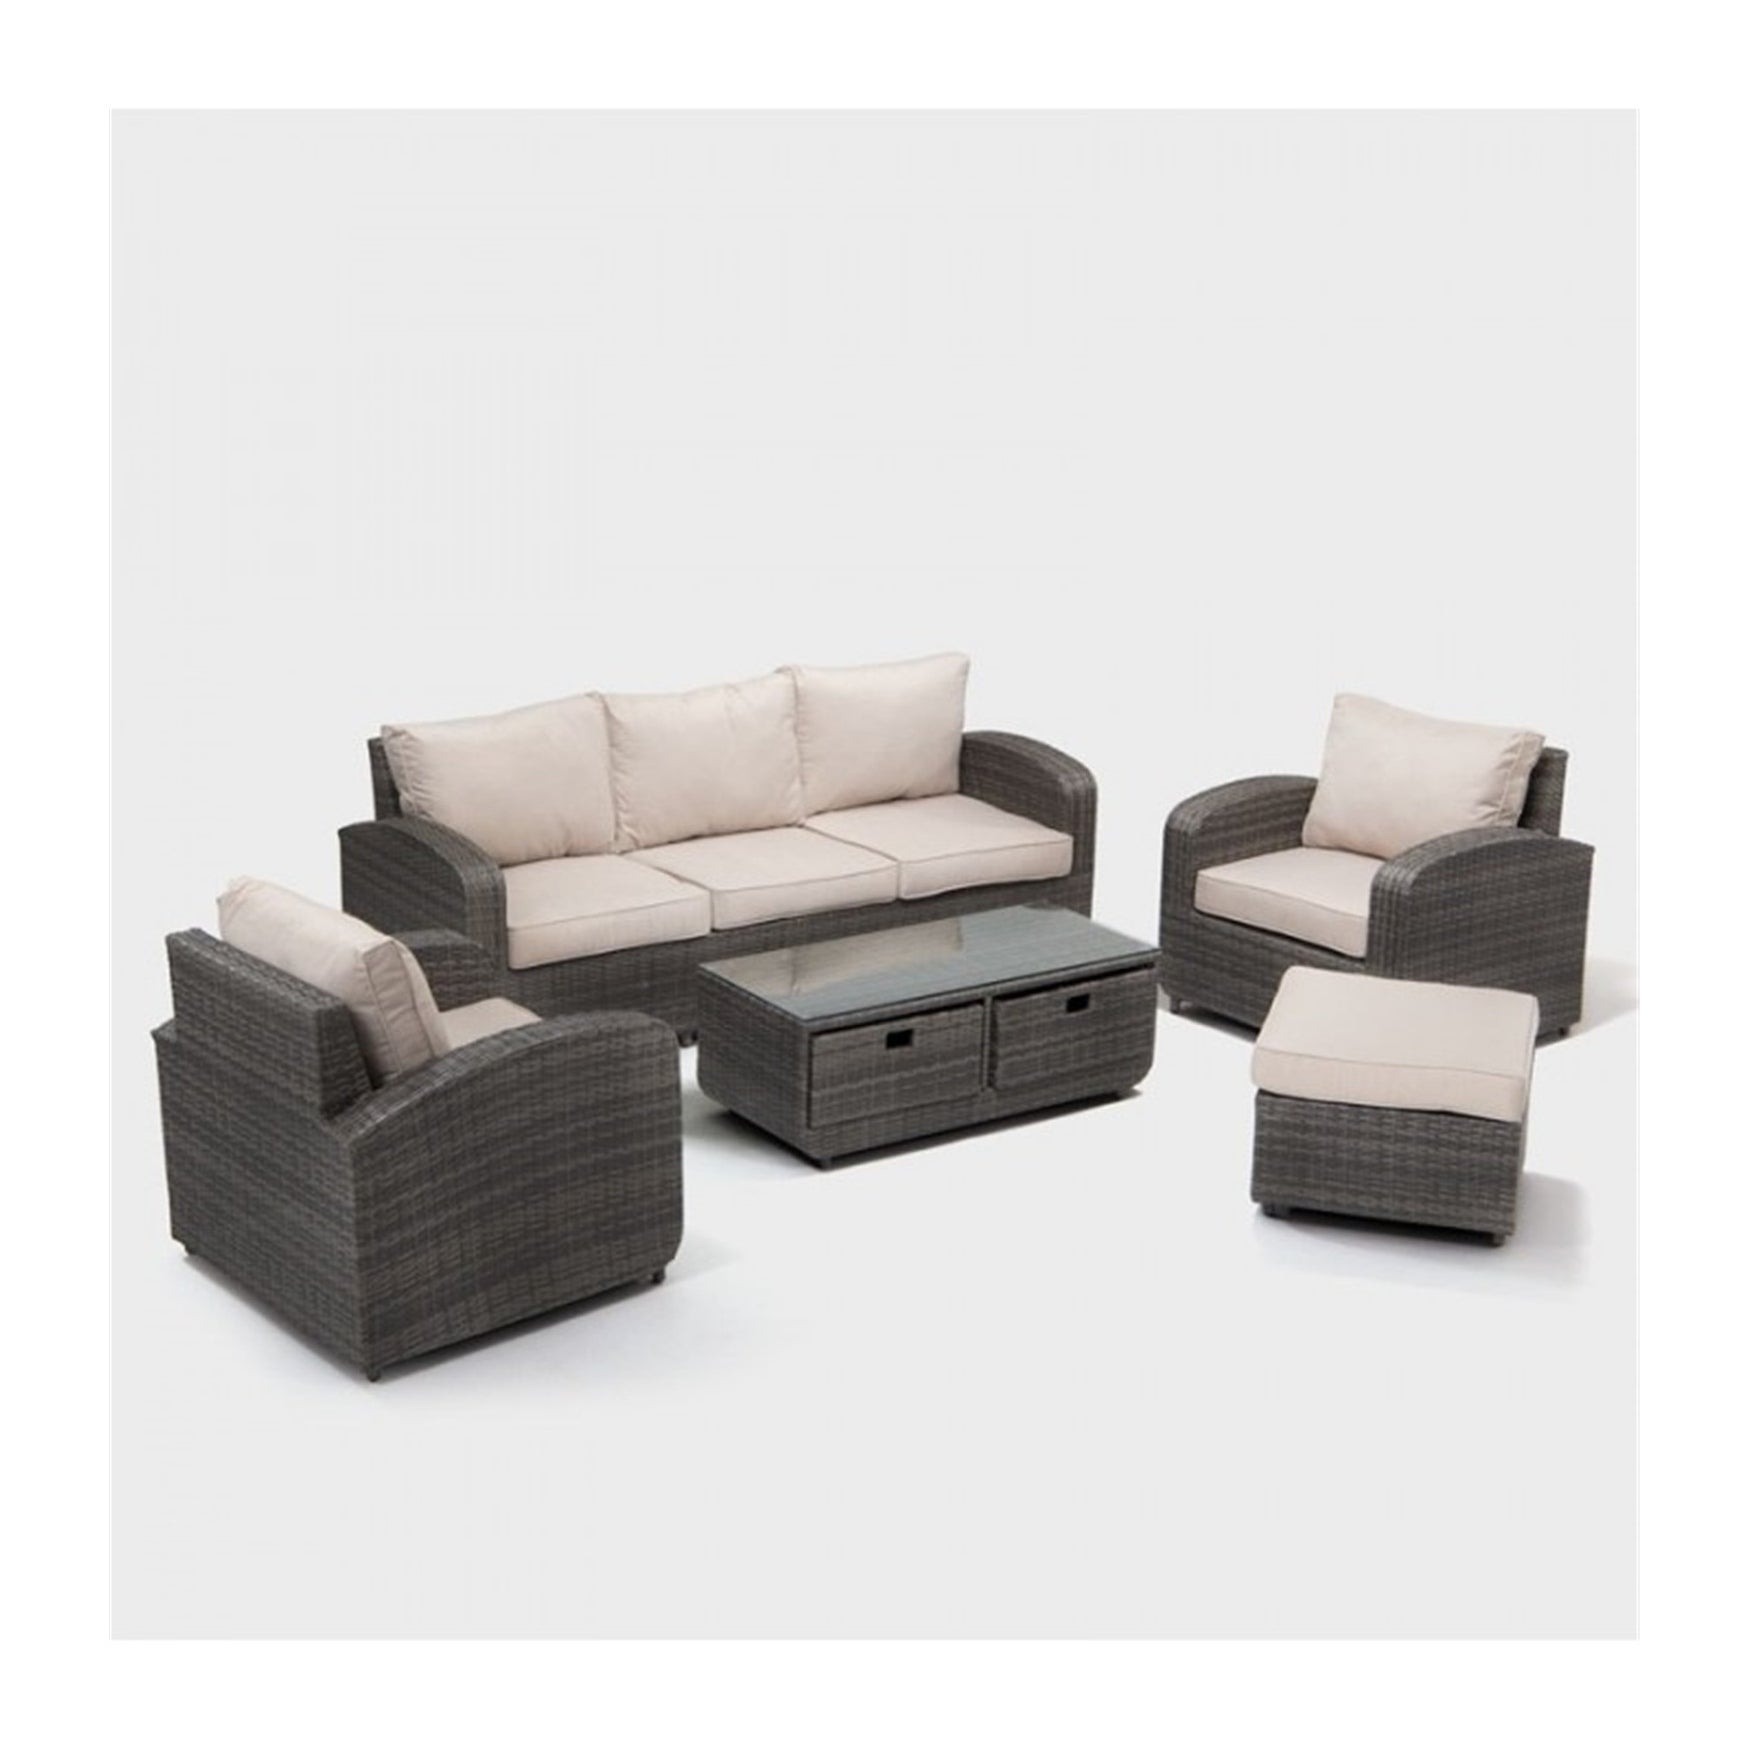 5-Piece Sofa set New Fashionable Simple Gray Cane Living Room Sofa Table BY  Direct Wicker